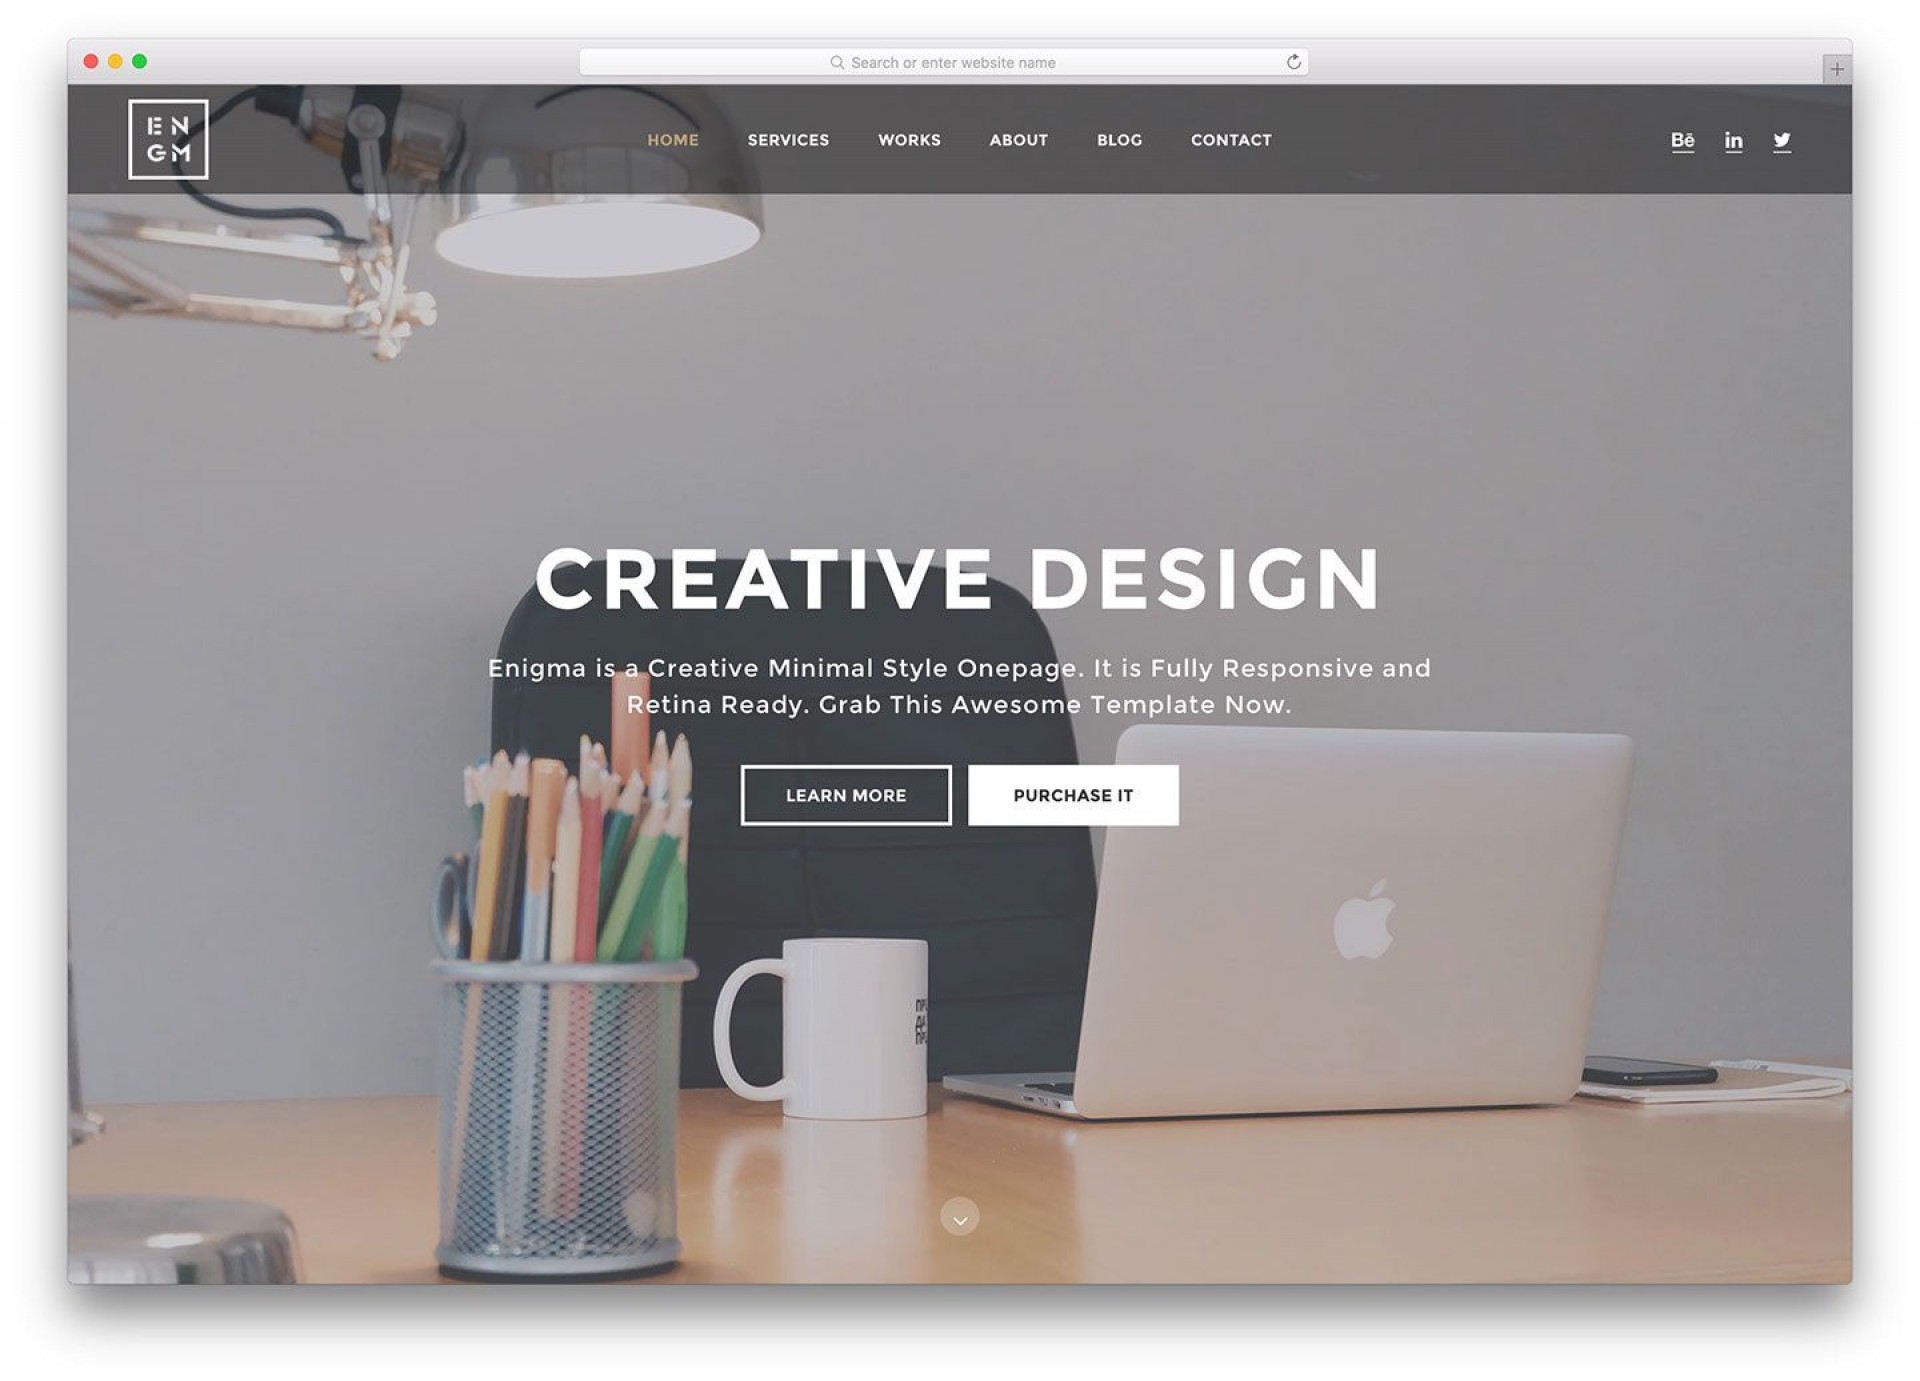 008 Staggering Website Template Html Code Free Download Sample 1920